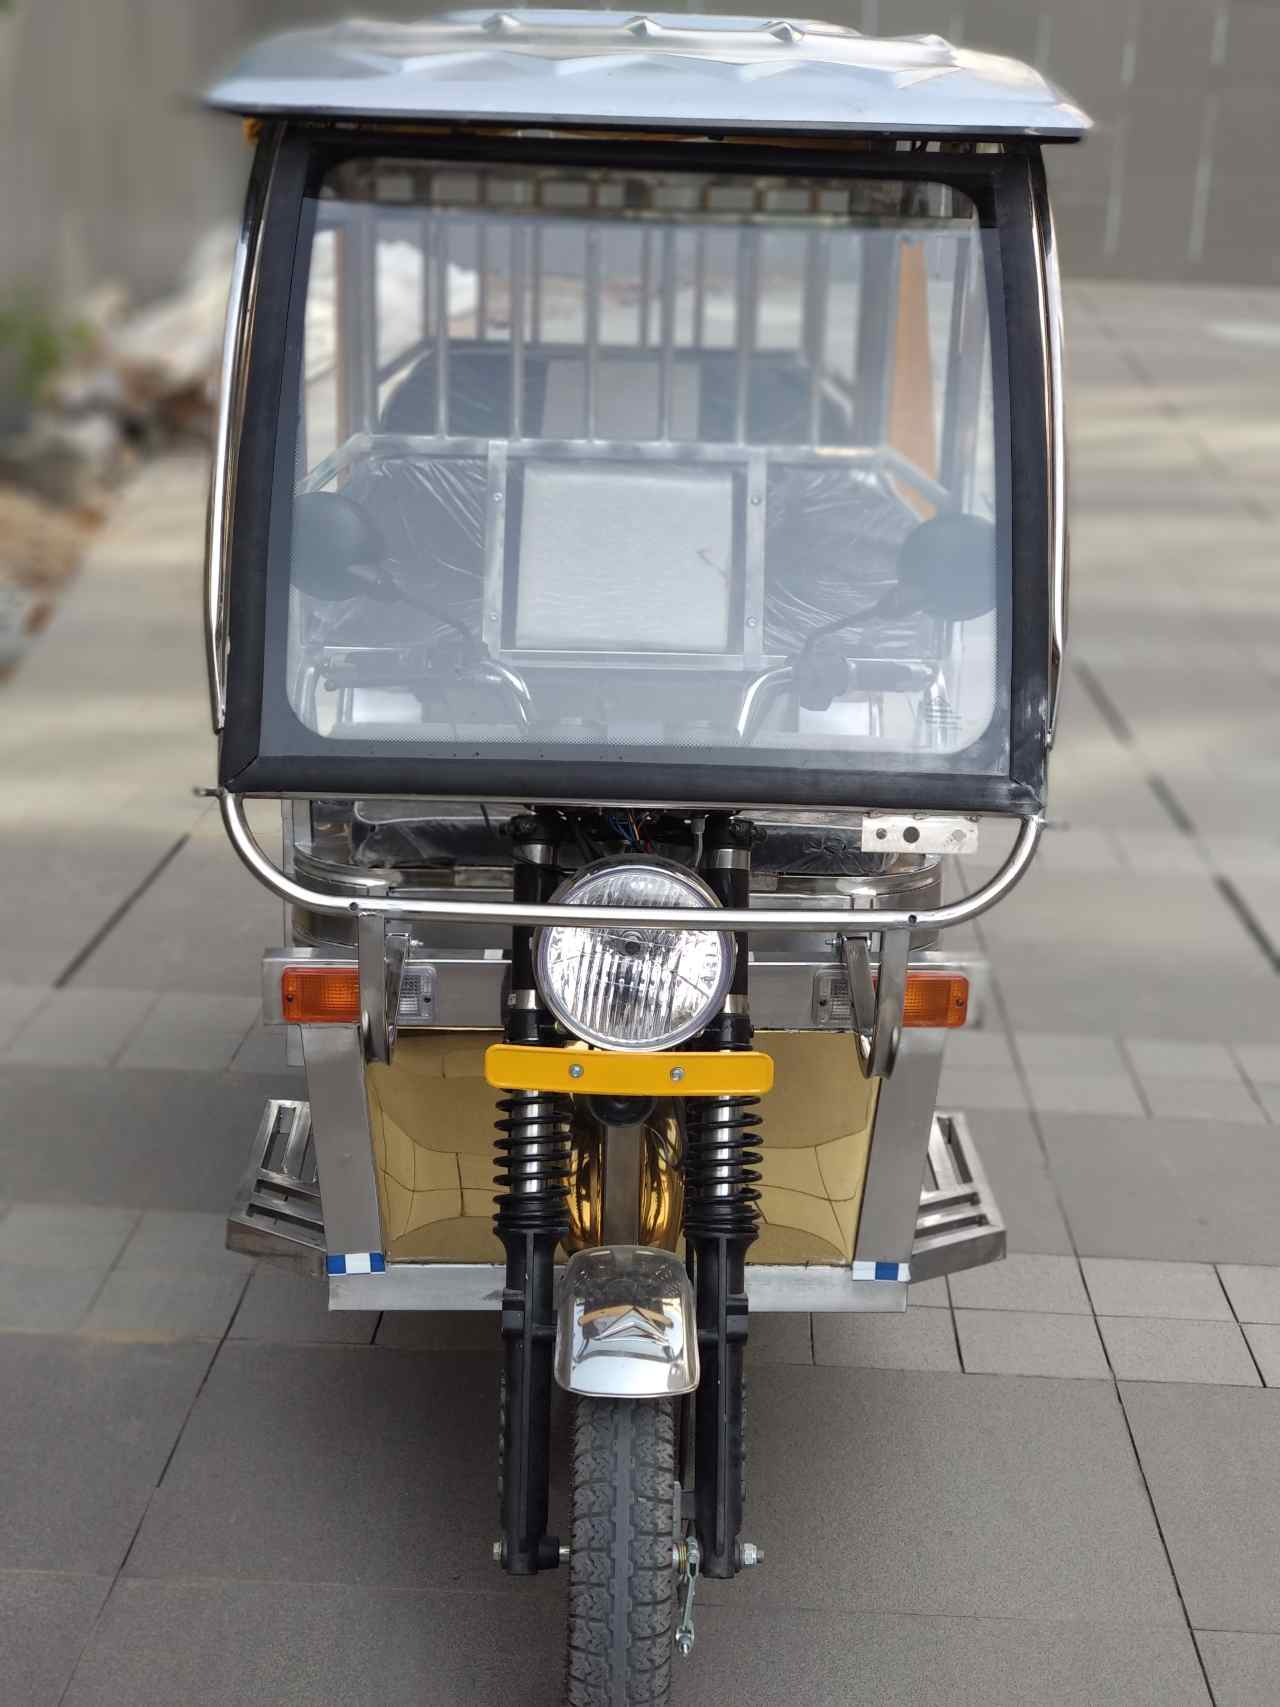 The E-rickshaw design was first unveiled at the EvExpo 2019 in Lucknow. (Image: Jindal Stainless)